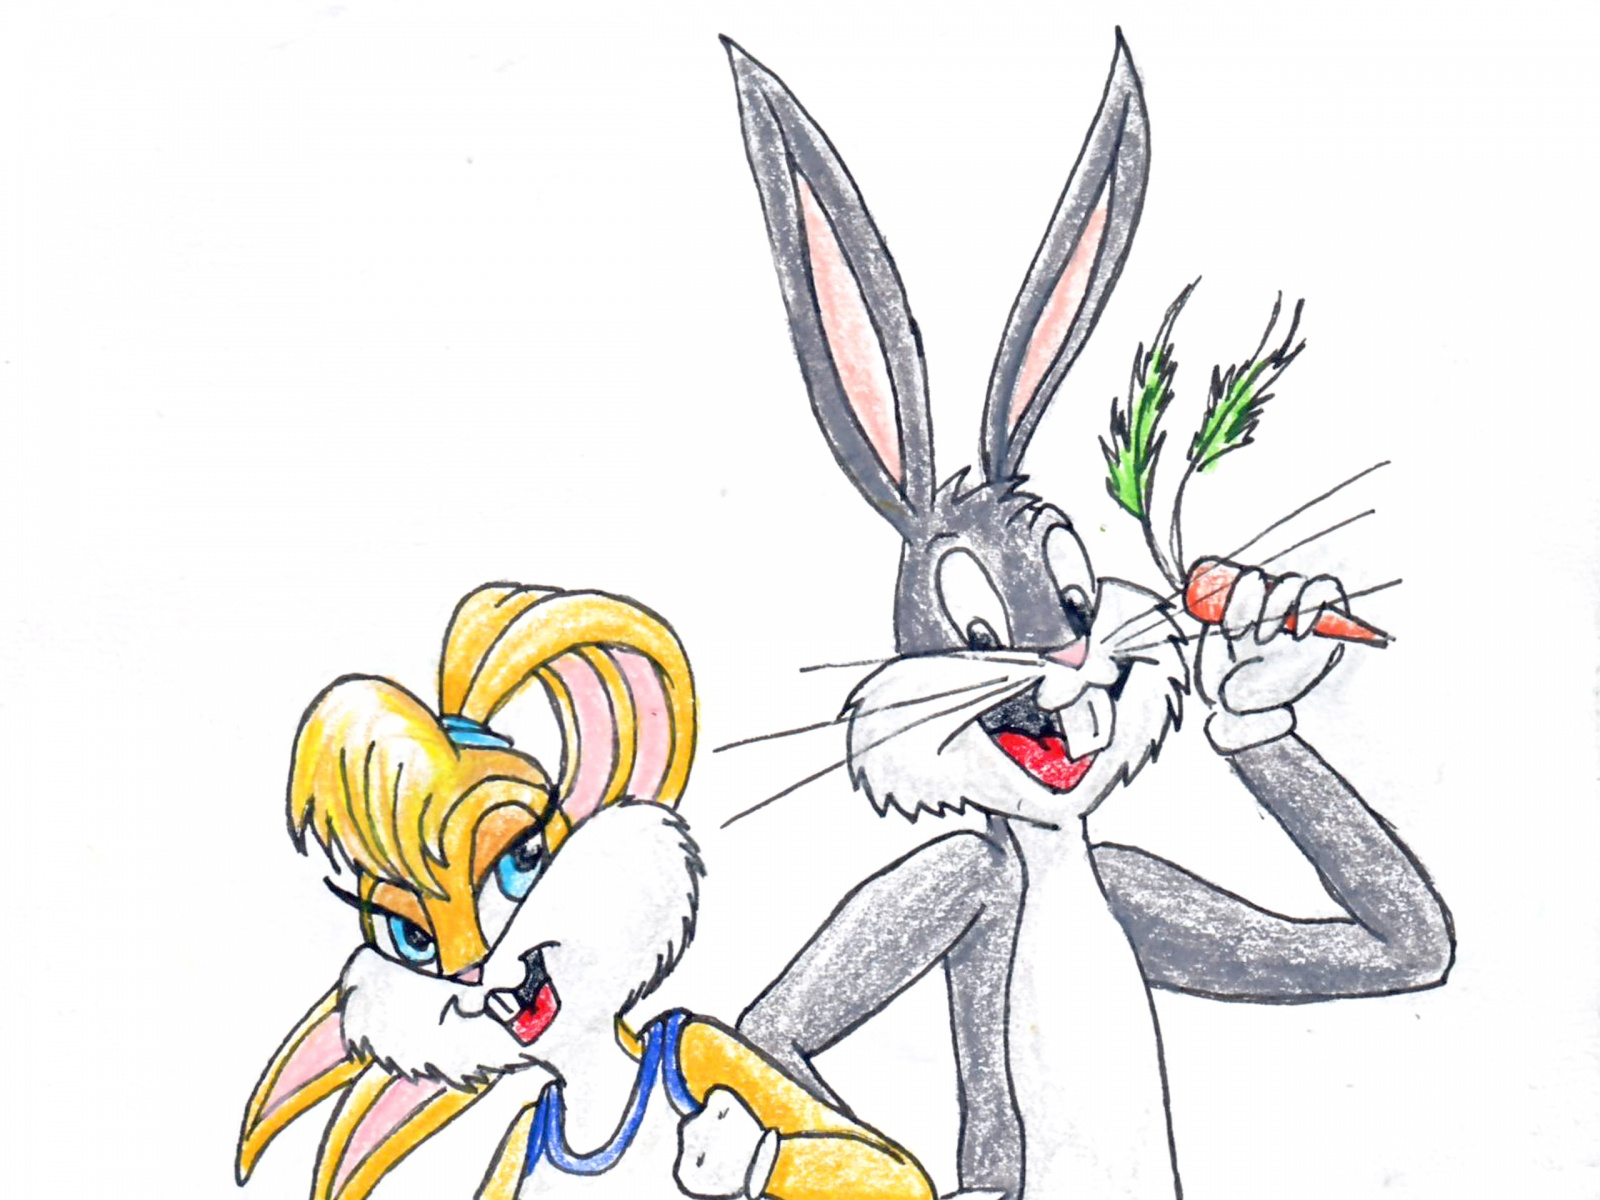 1600x1200 Bugs Bunny And Daffy Duck Cartoon Hd Wallpaper X Chainimage